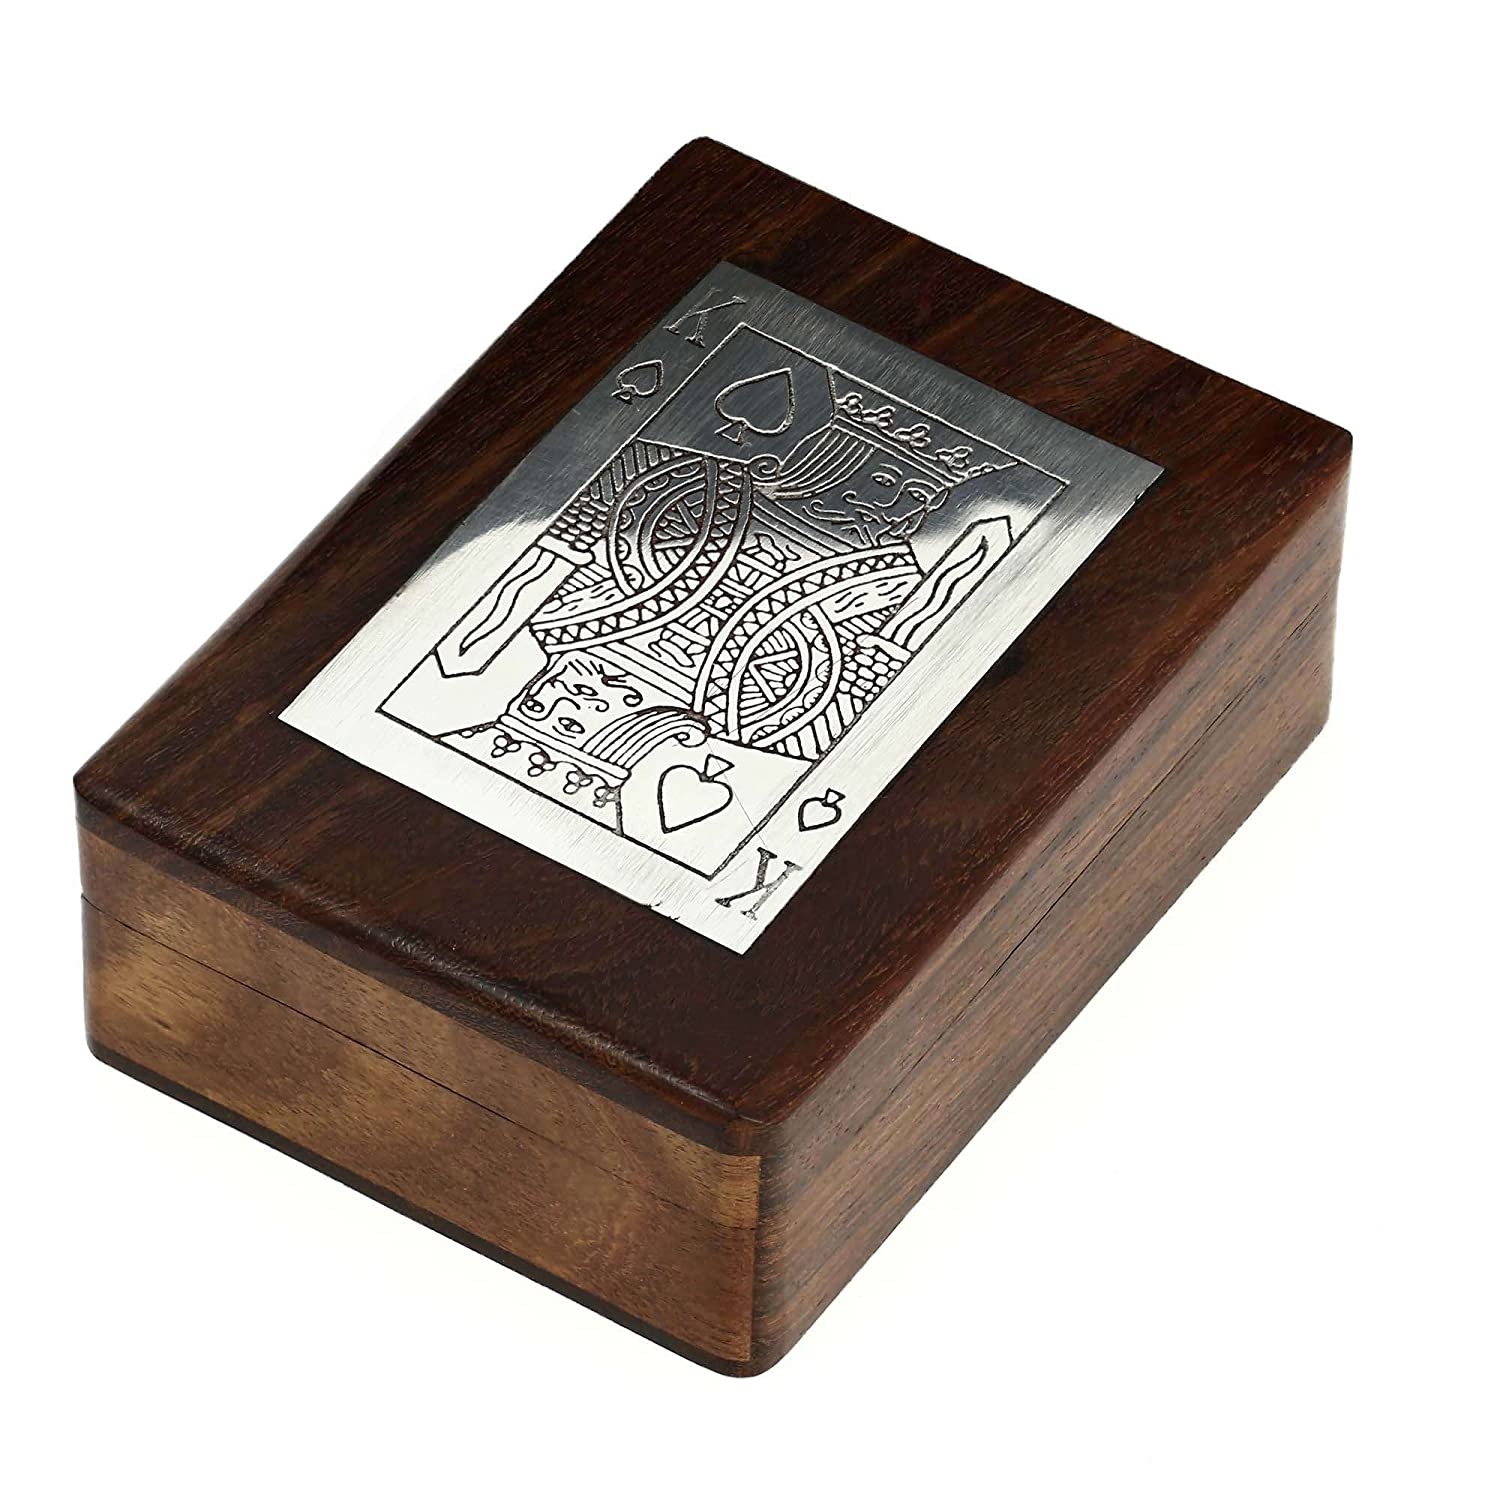 Amazon.com: Wooden Boxes for Storage Playing Card Holder Artisan ...